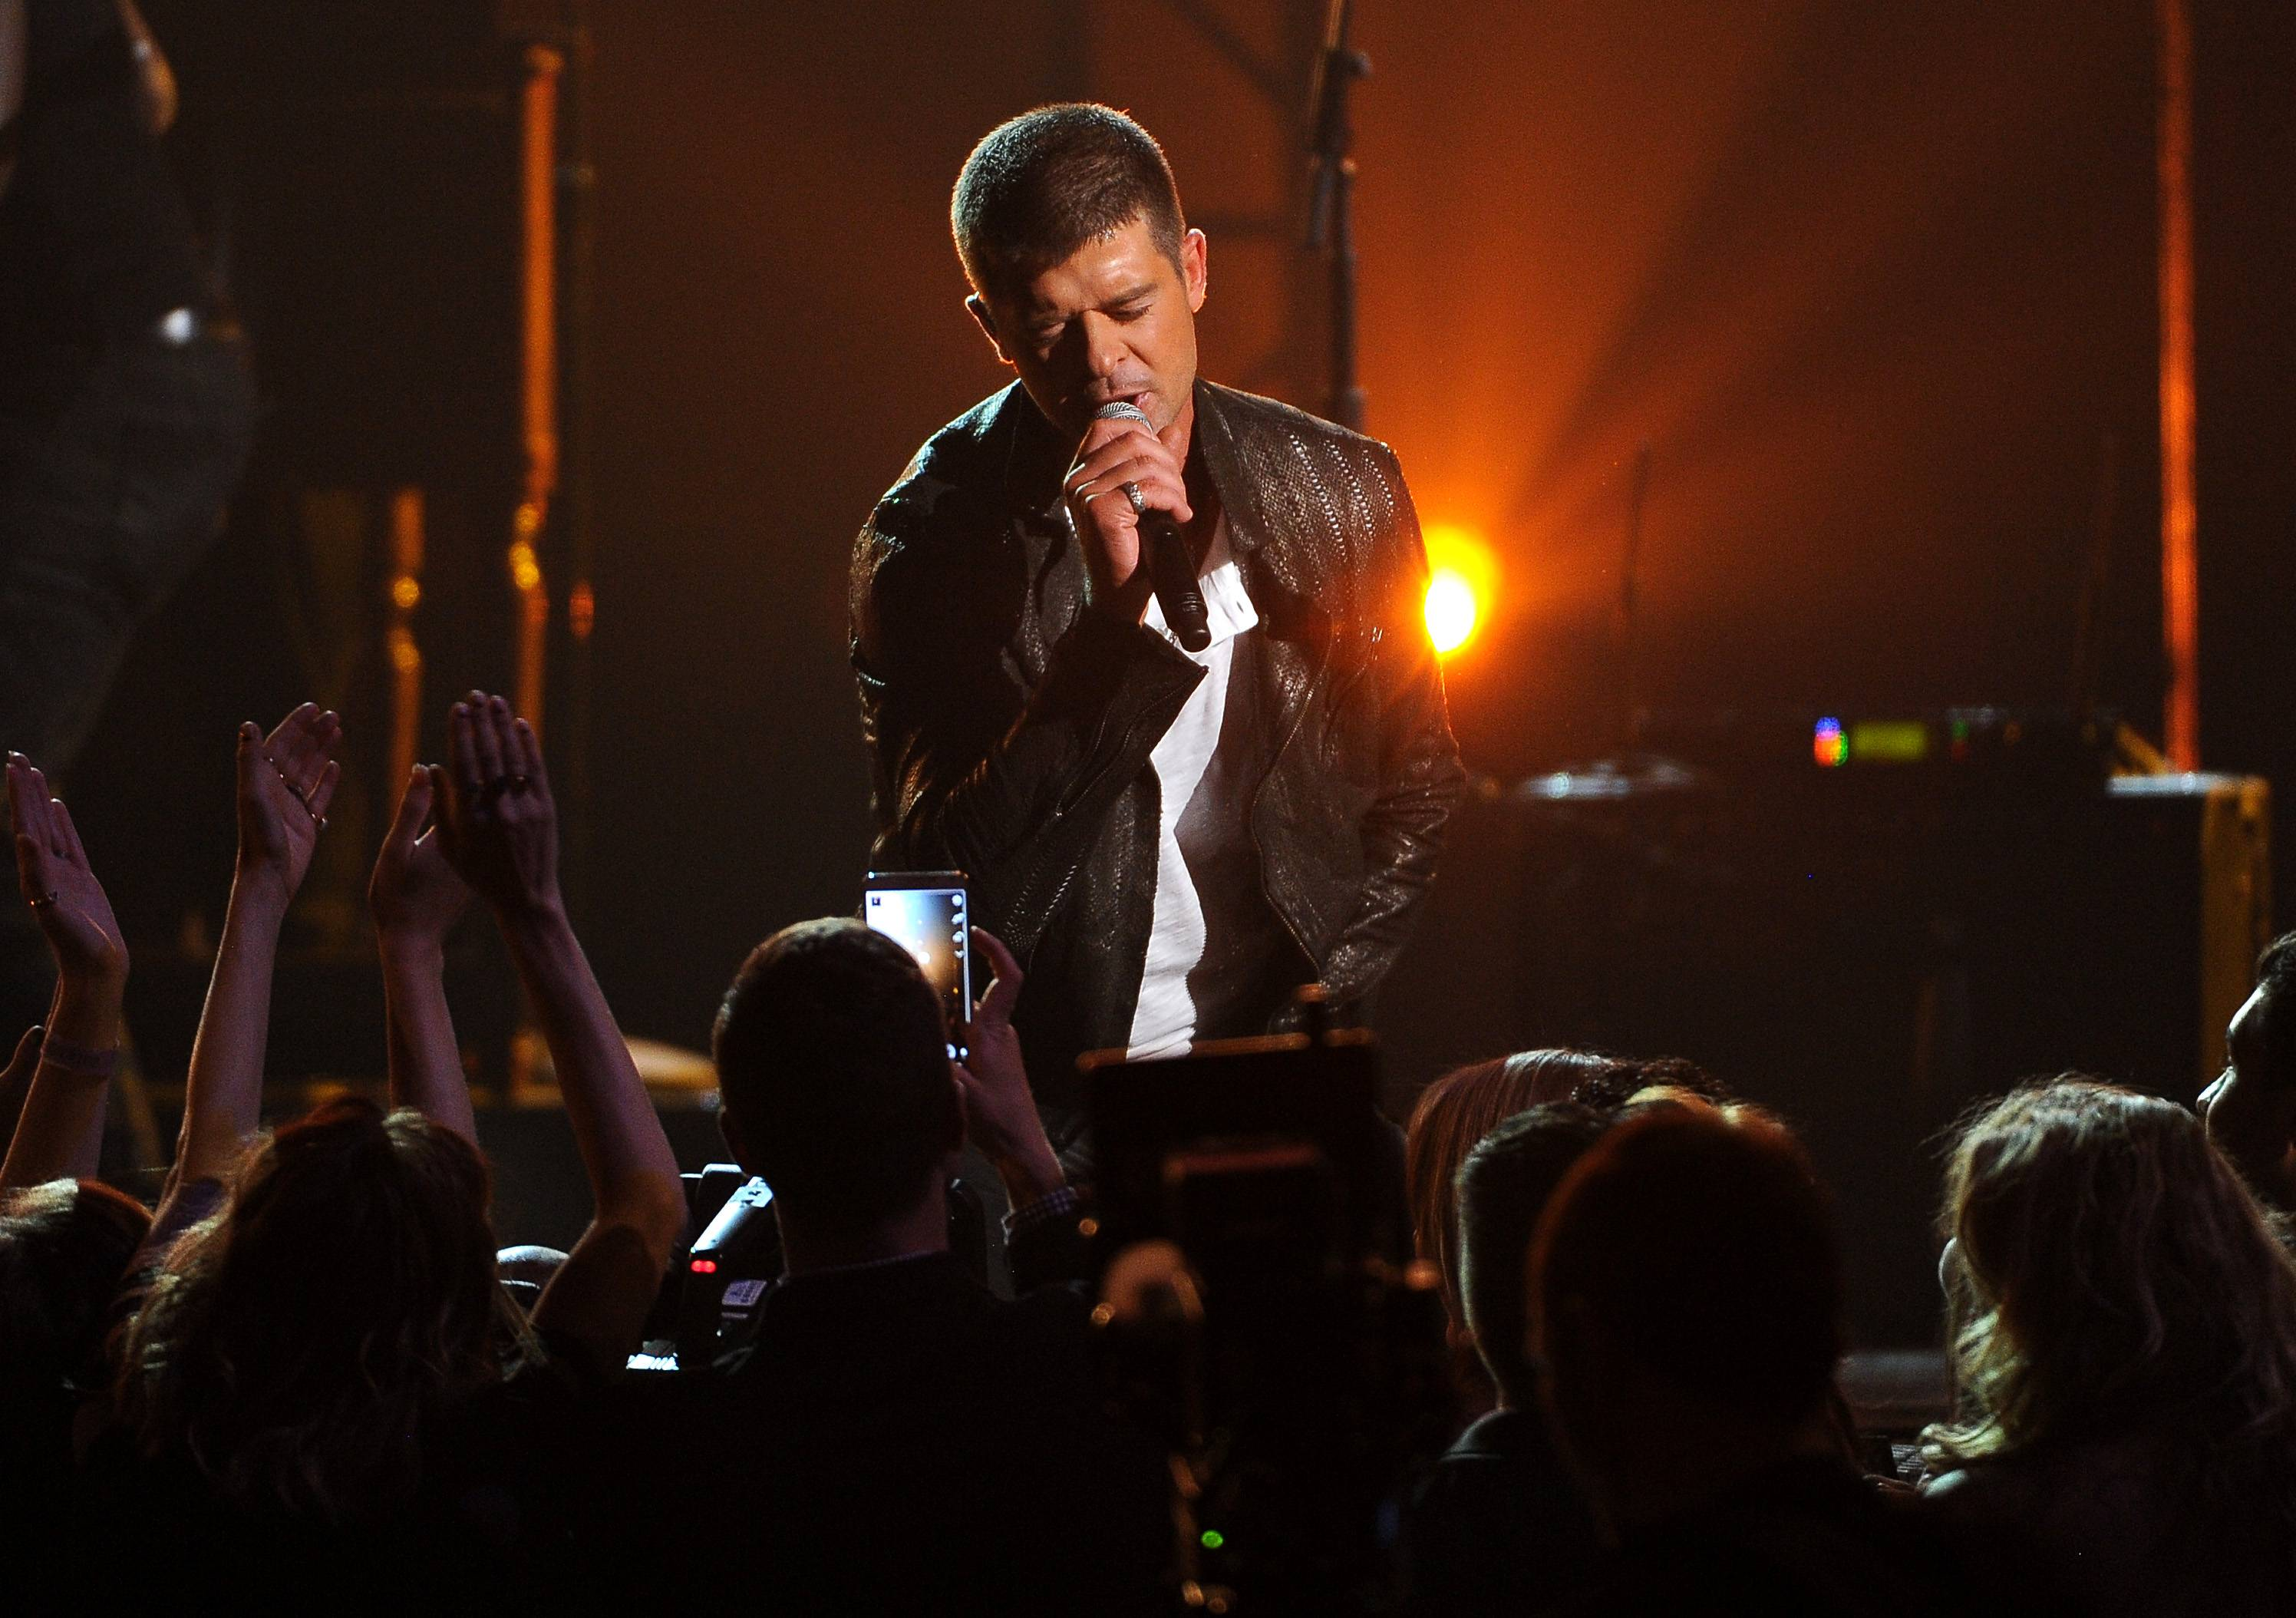 Robin Thicke performs on stage at the Billboard Music Awards at the MGM Grand Garden Arena on Sunday, May 18, 2014, in Las Vegas.